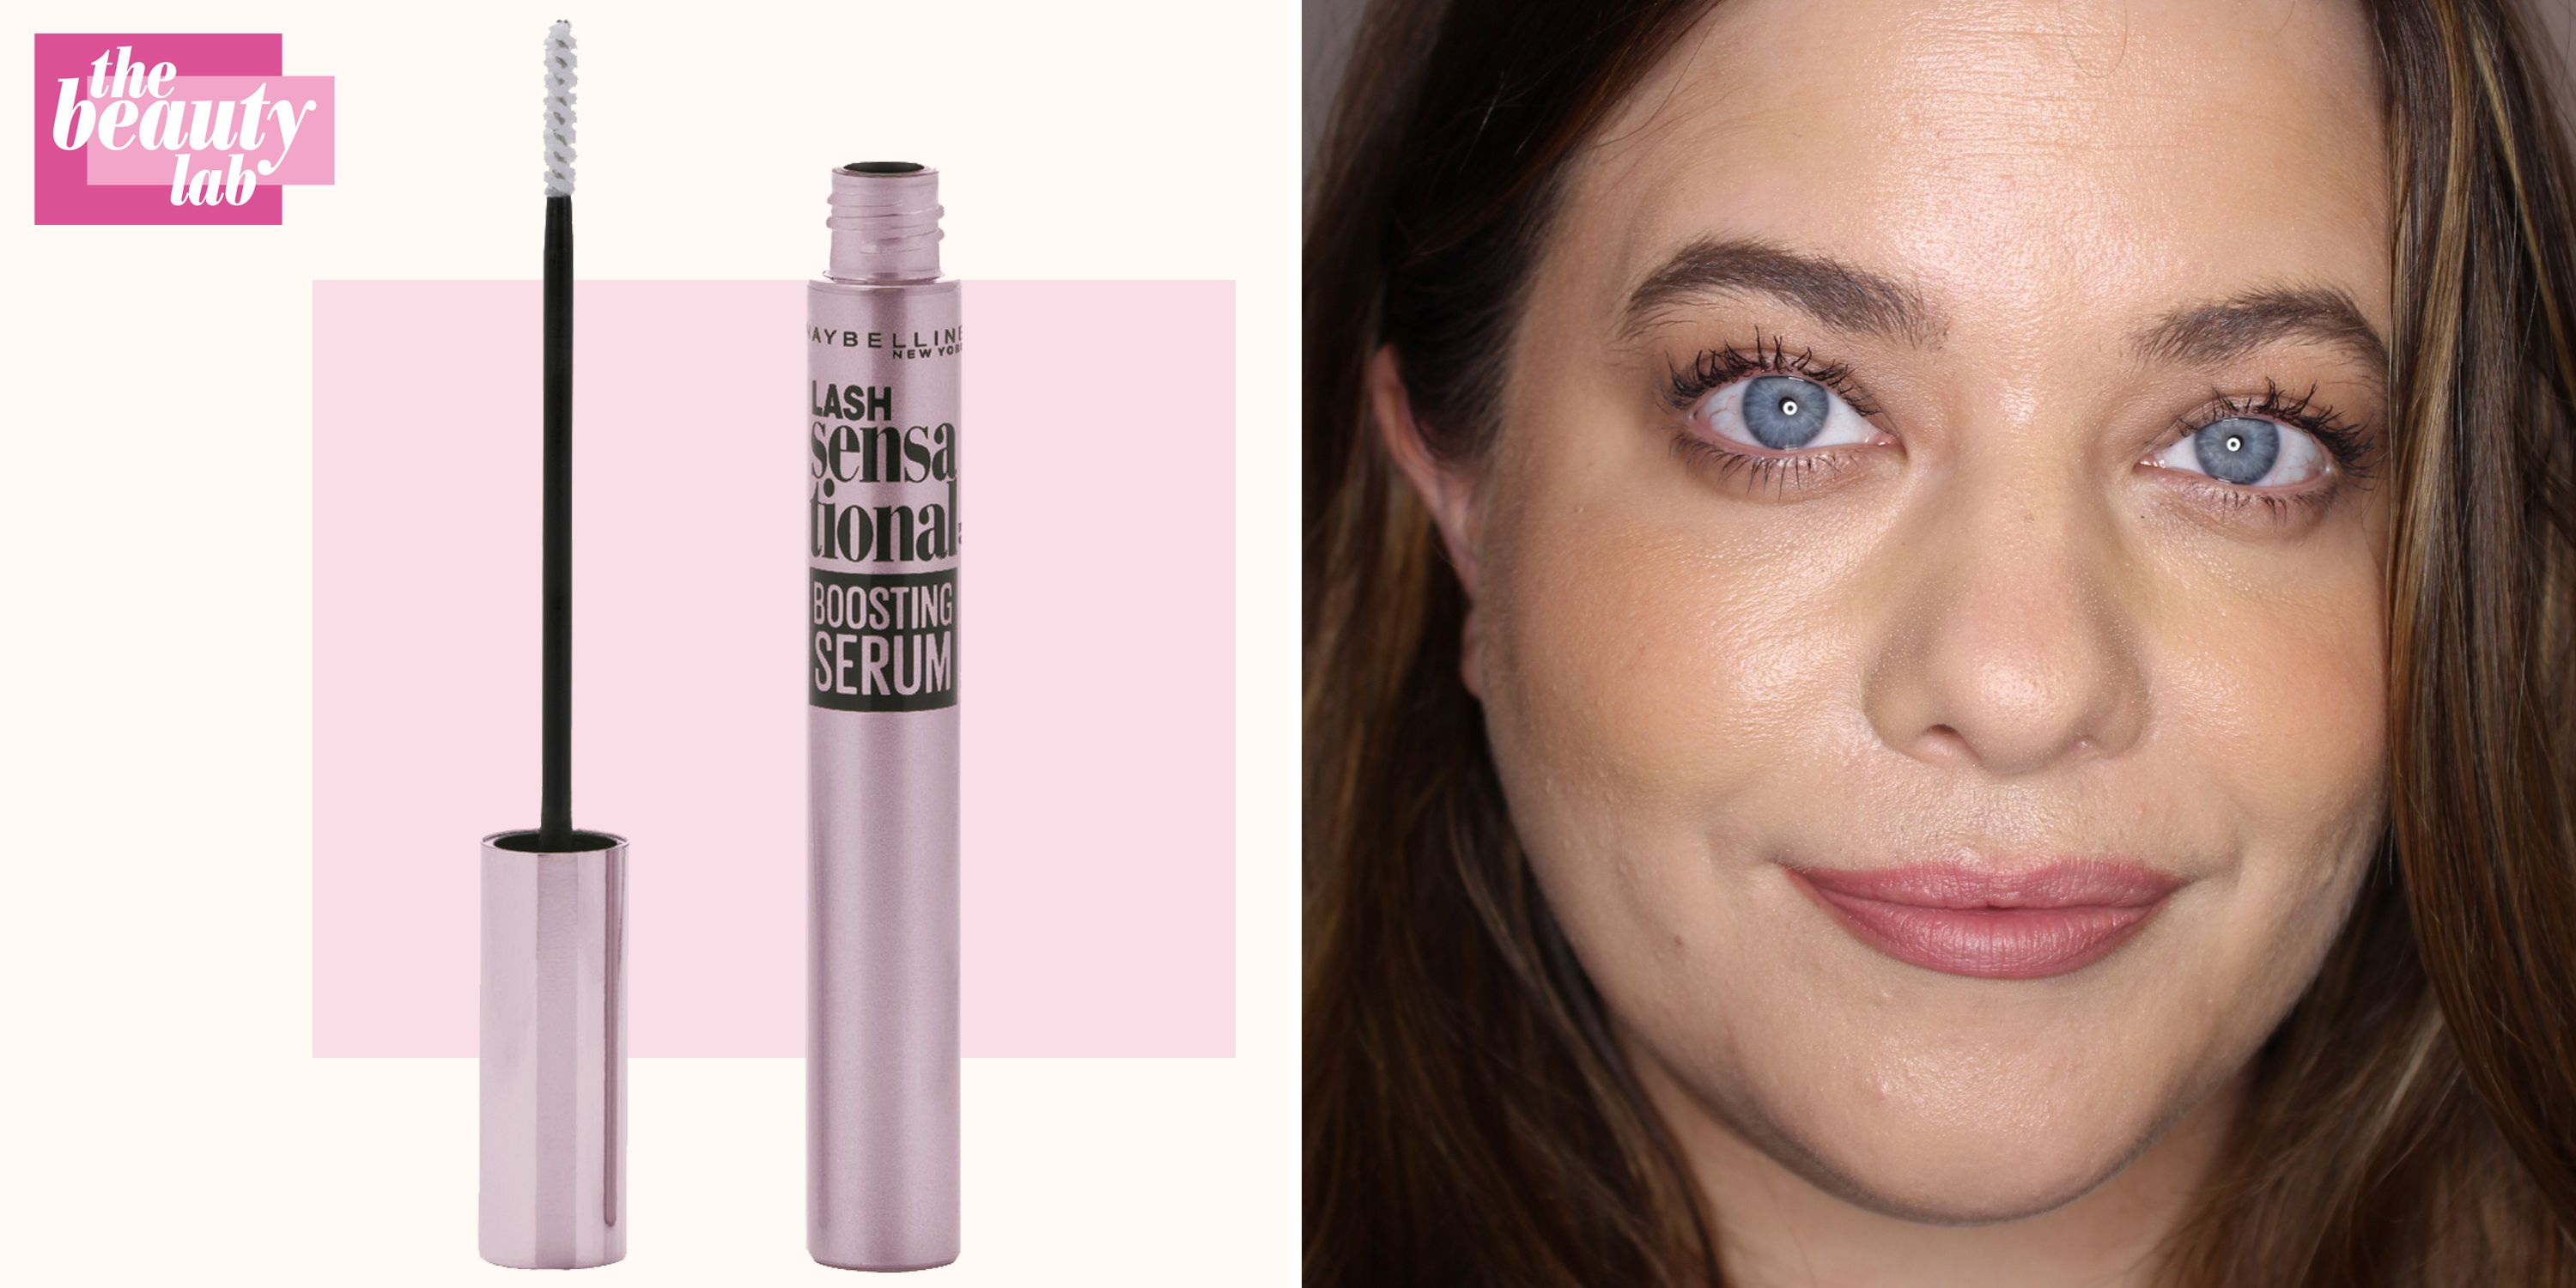 Maybelline Lash Sensational Boosting Serum We Put The 1499